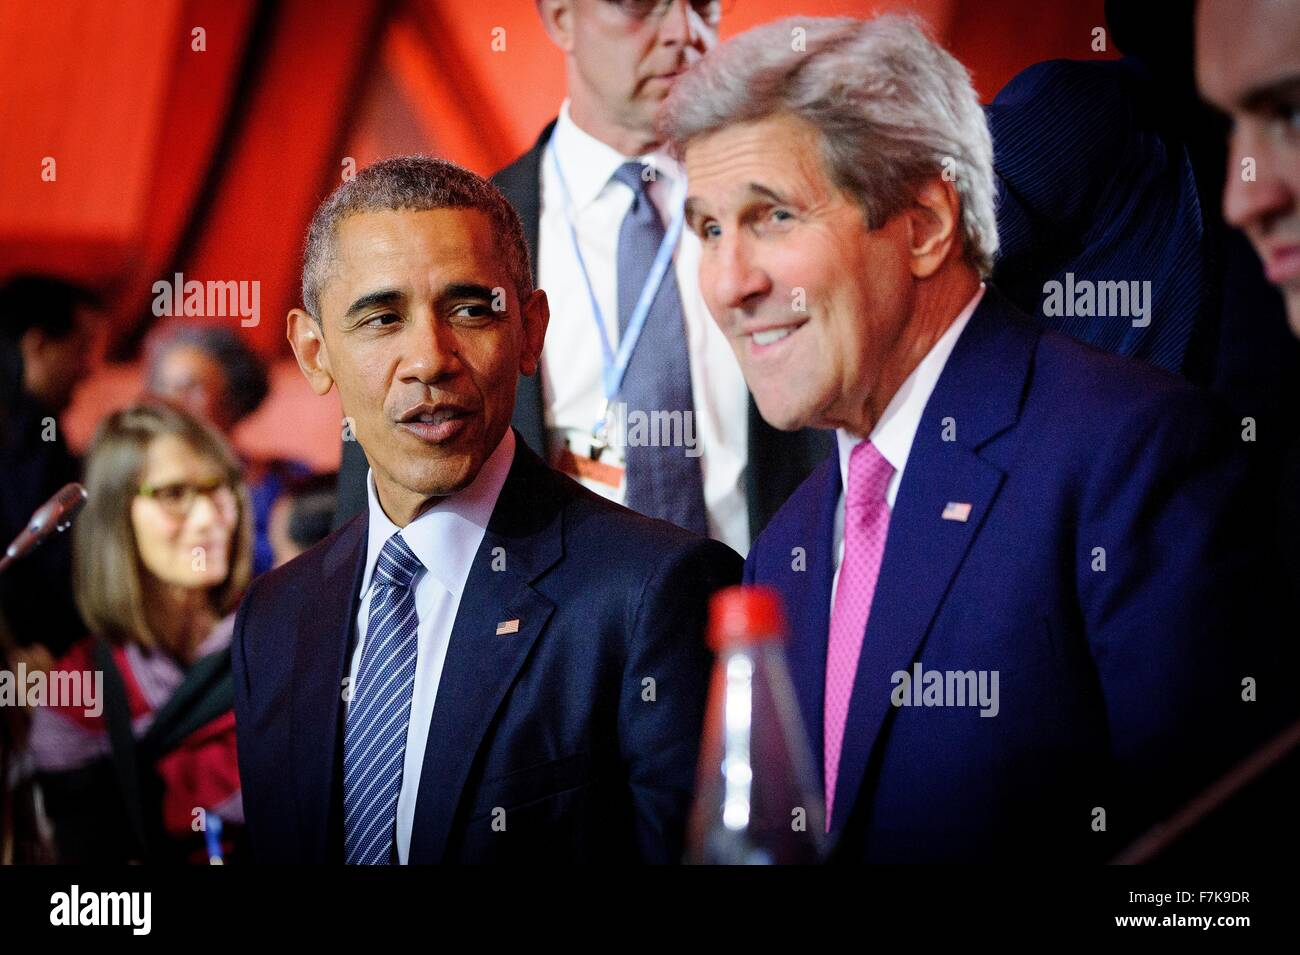 U.S. President Barack Obama talks with Secretary of State John Kerry during the opening plenary session of the COP21, - Stock Image